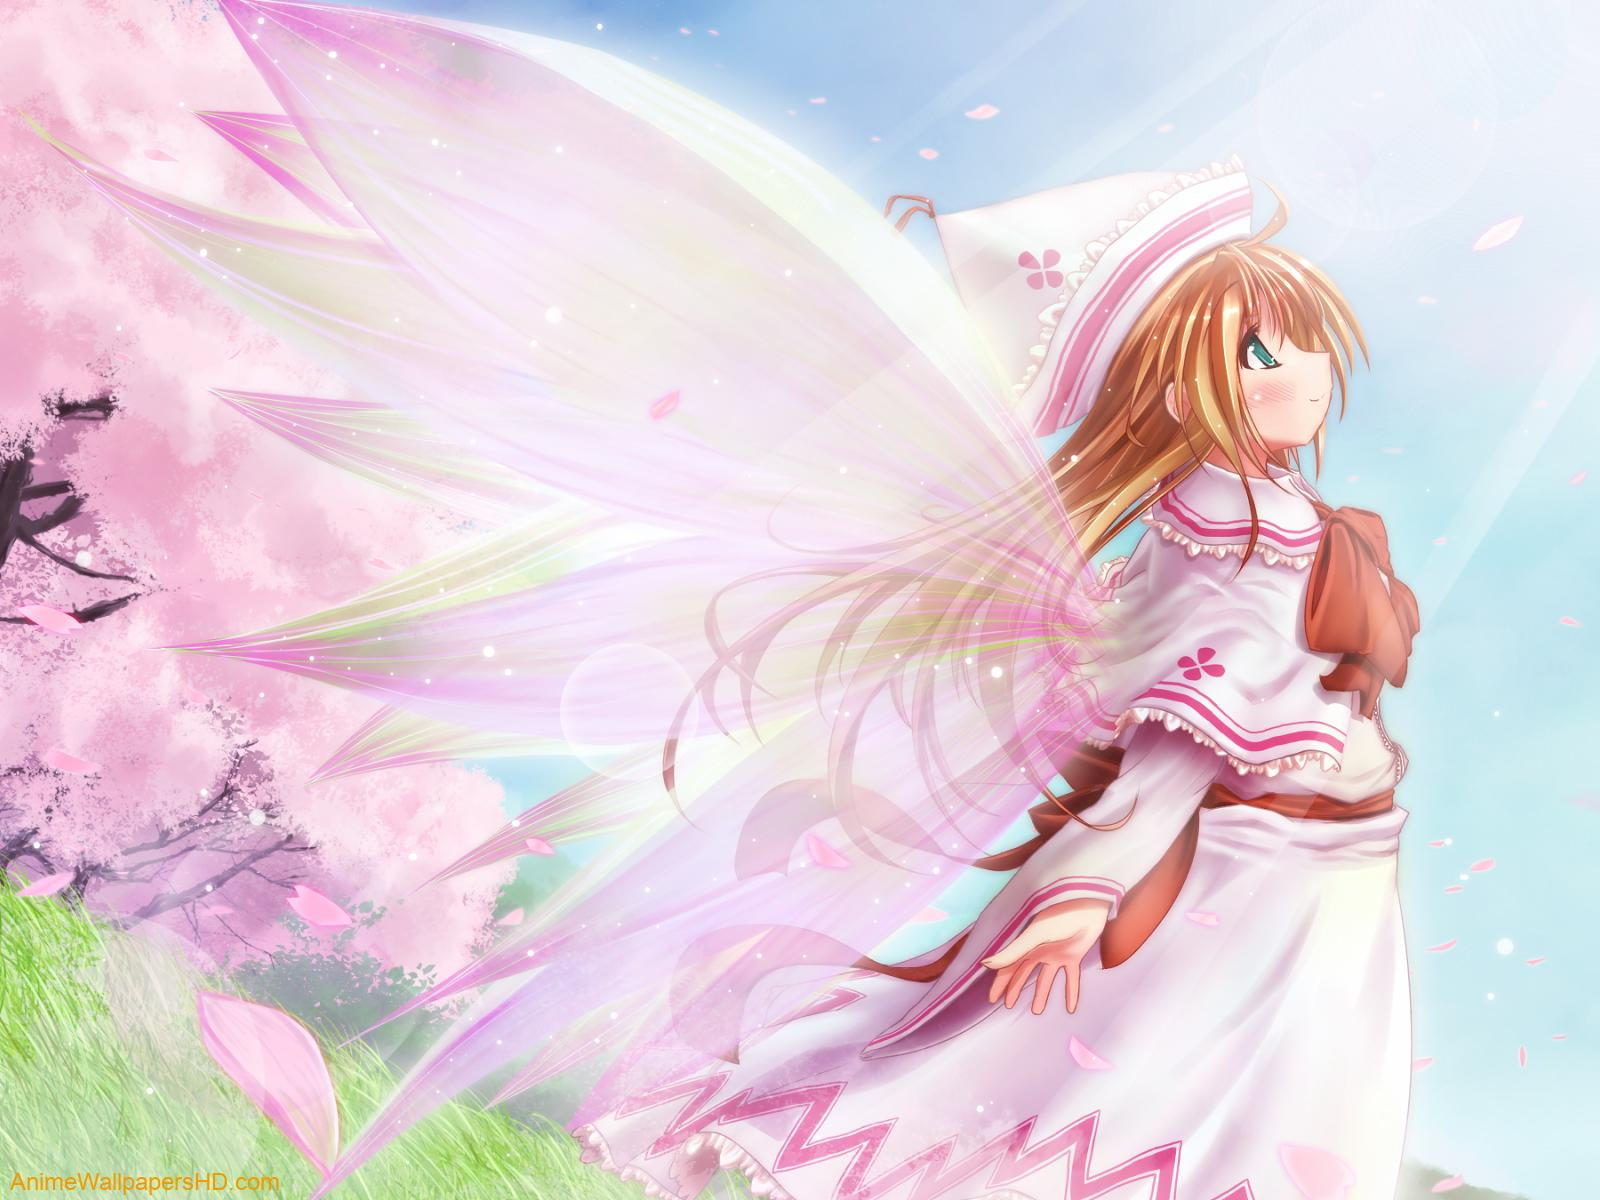 Wallpaper Images Angel Kawaii Anime Pictures Www Picturesboss Com